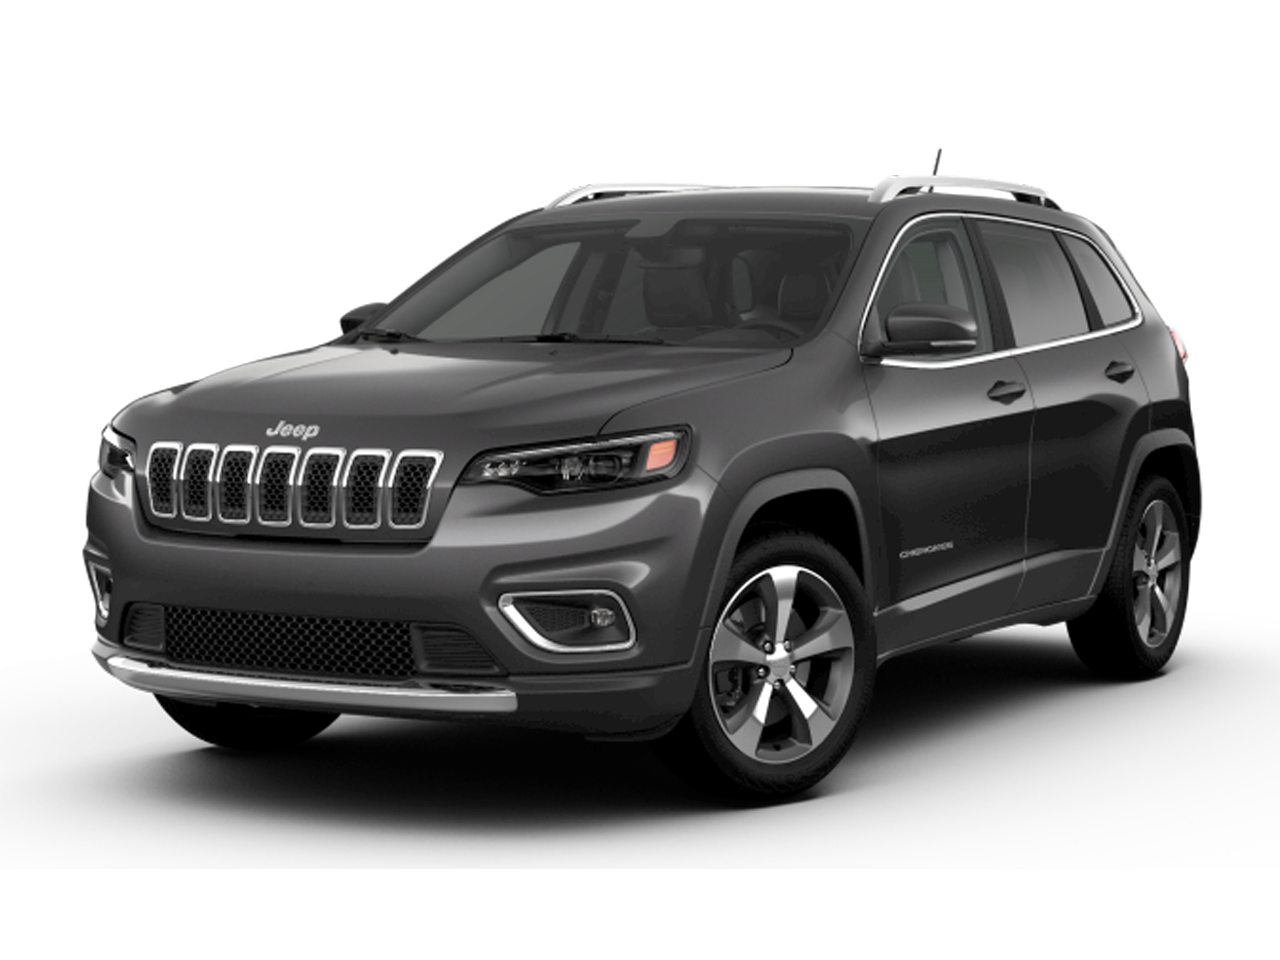 Test Drive A 2019 Jeep Cherokee At Huntington Beach Chrysler Dodge Jeep RAM  In Orange County